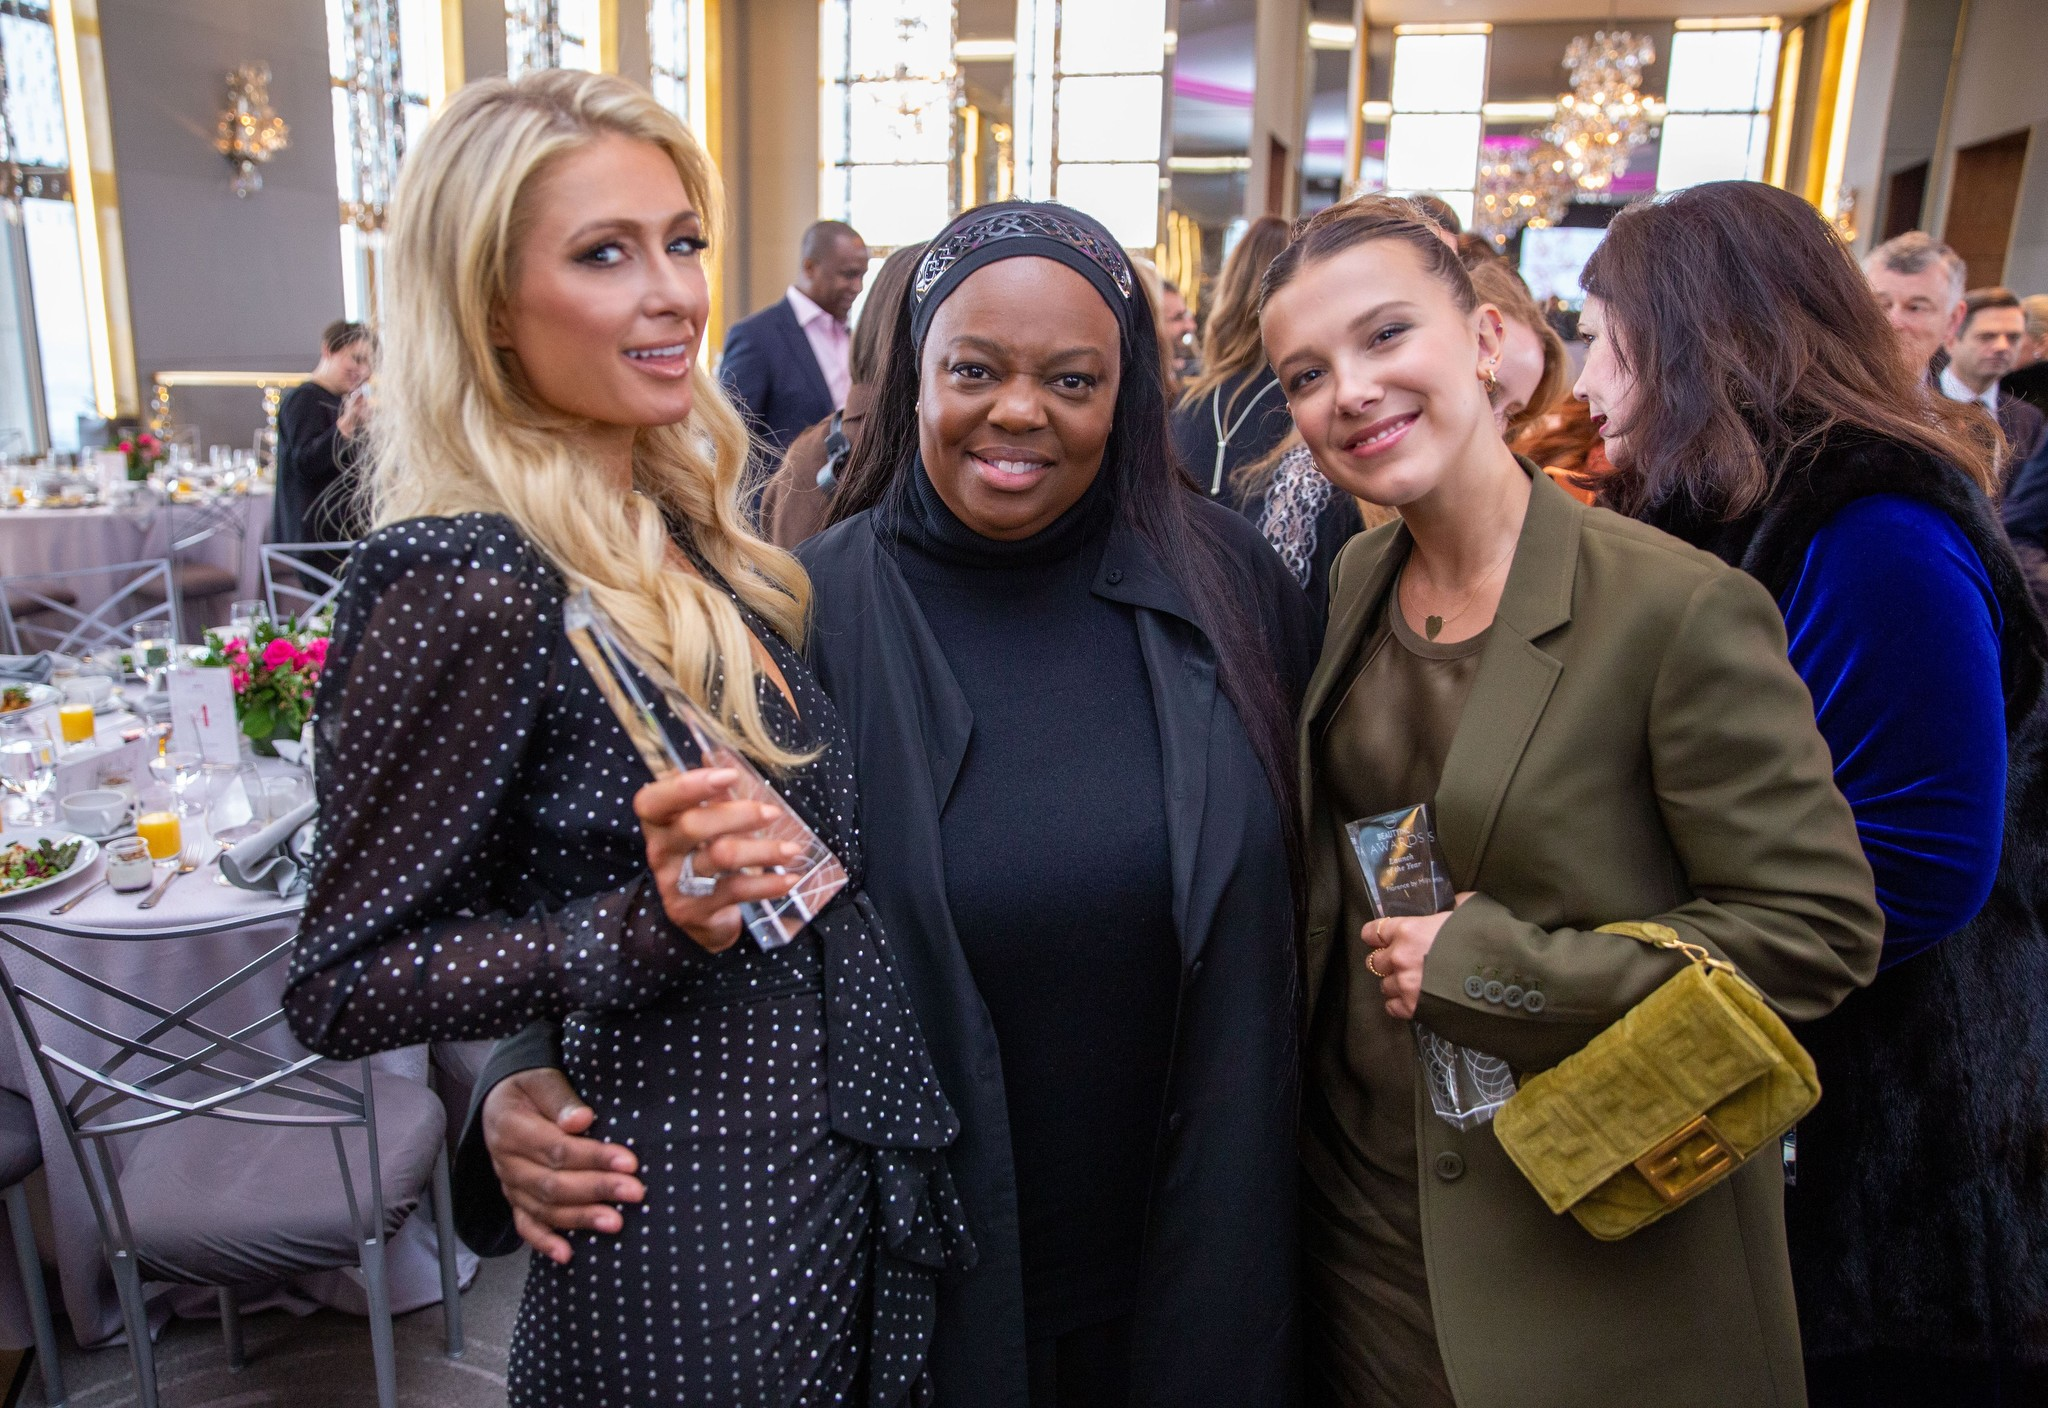 Paris Hilton, Pat McGrath and Millie Bobby Brown.